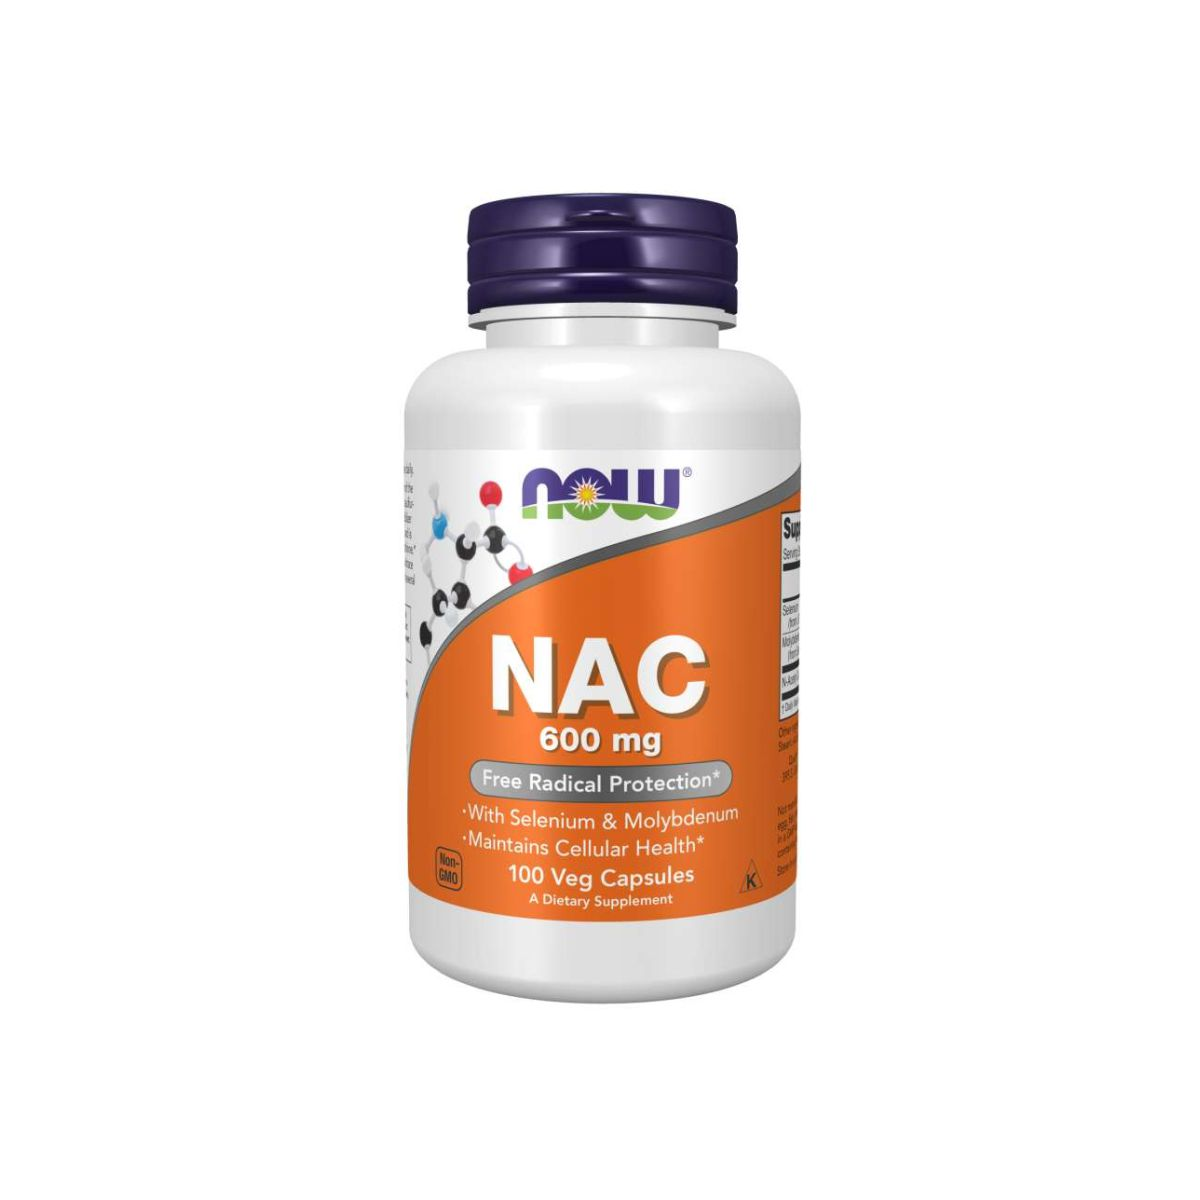 N-Acetil Cisteína NAC 600mg 100 Caps - Now Foods